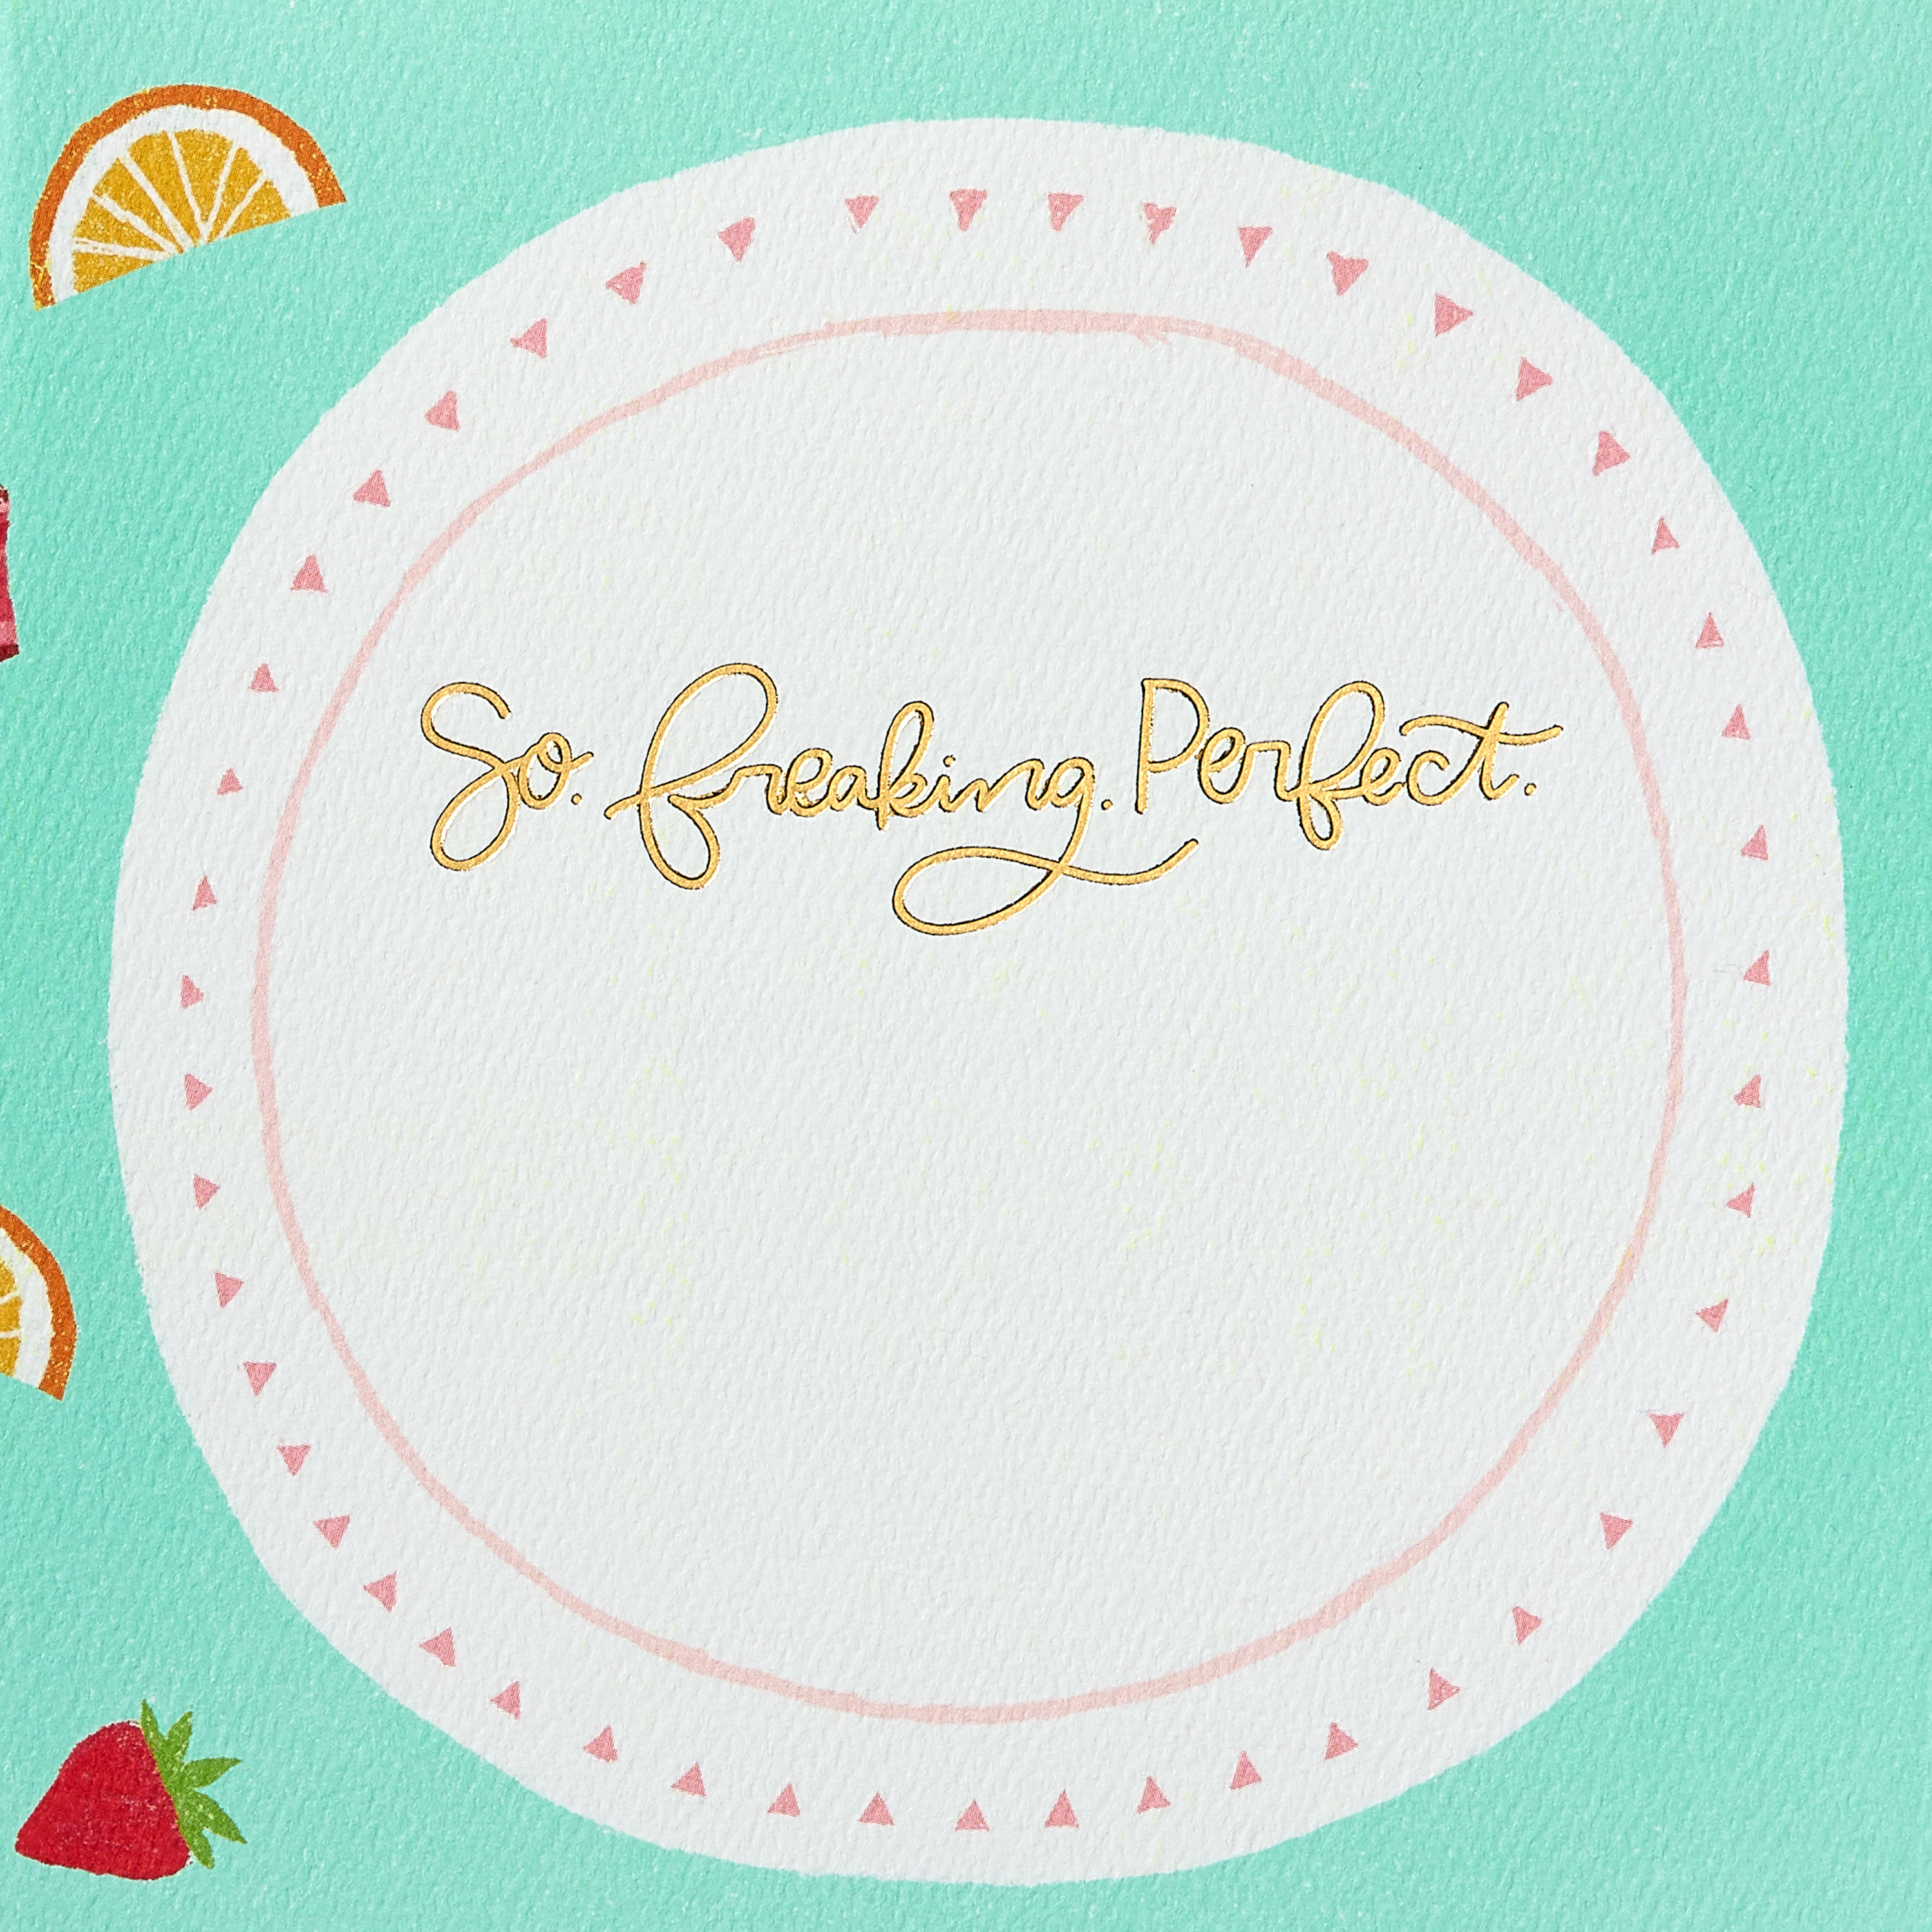 Brunch Greeting Card - Birthday, Thinking of You, Encouragement image